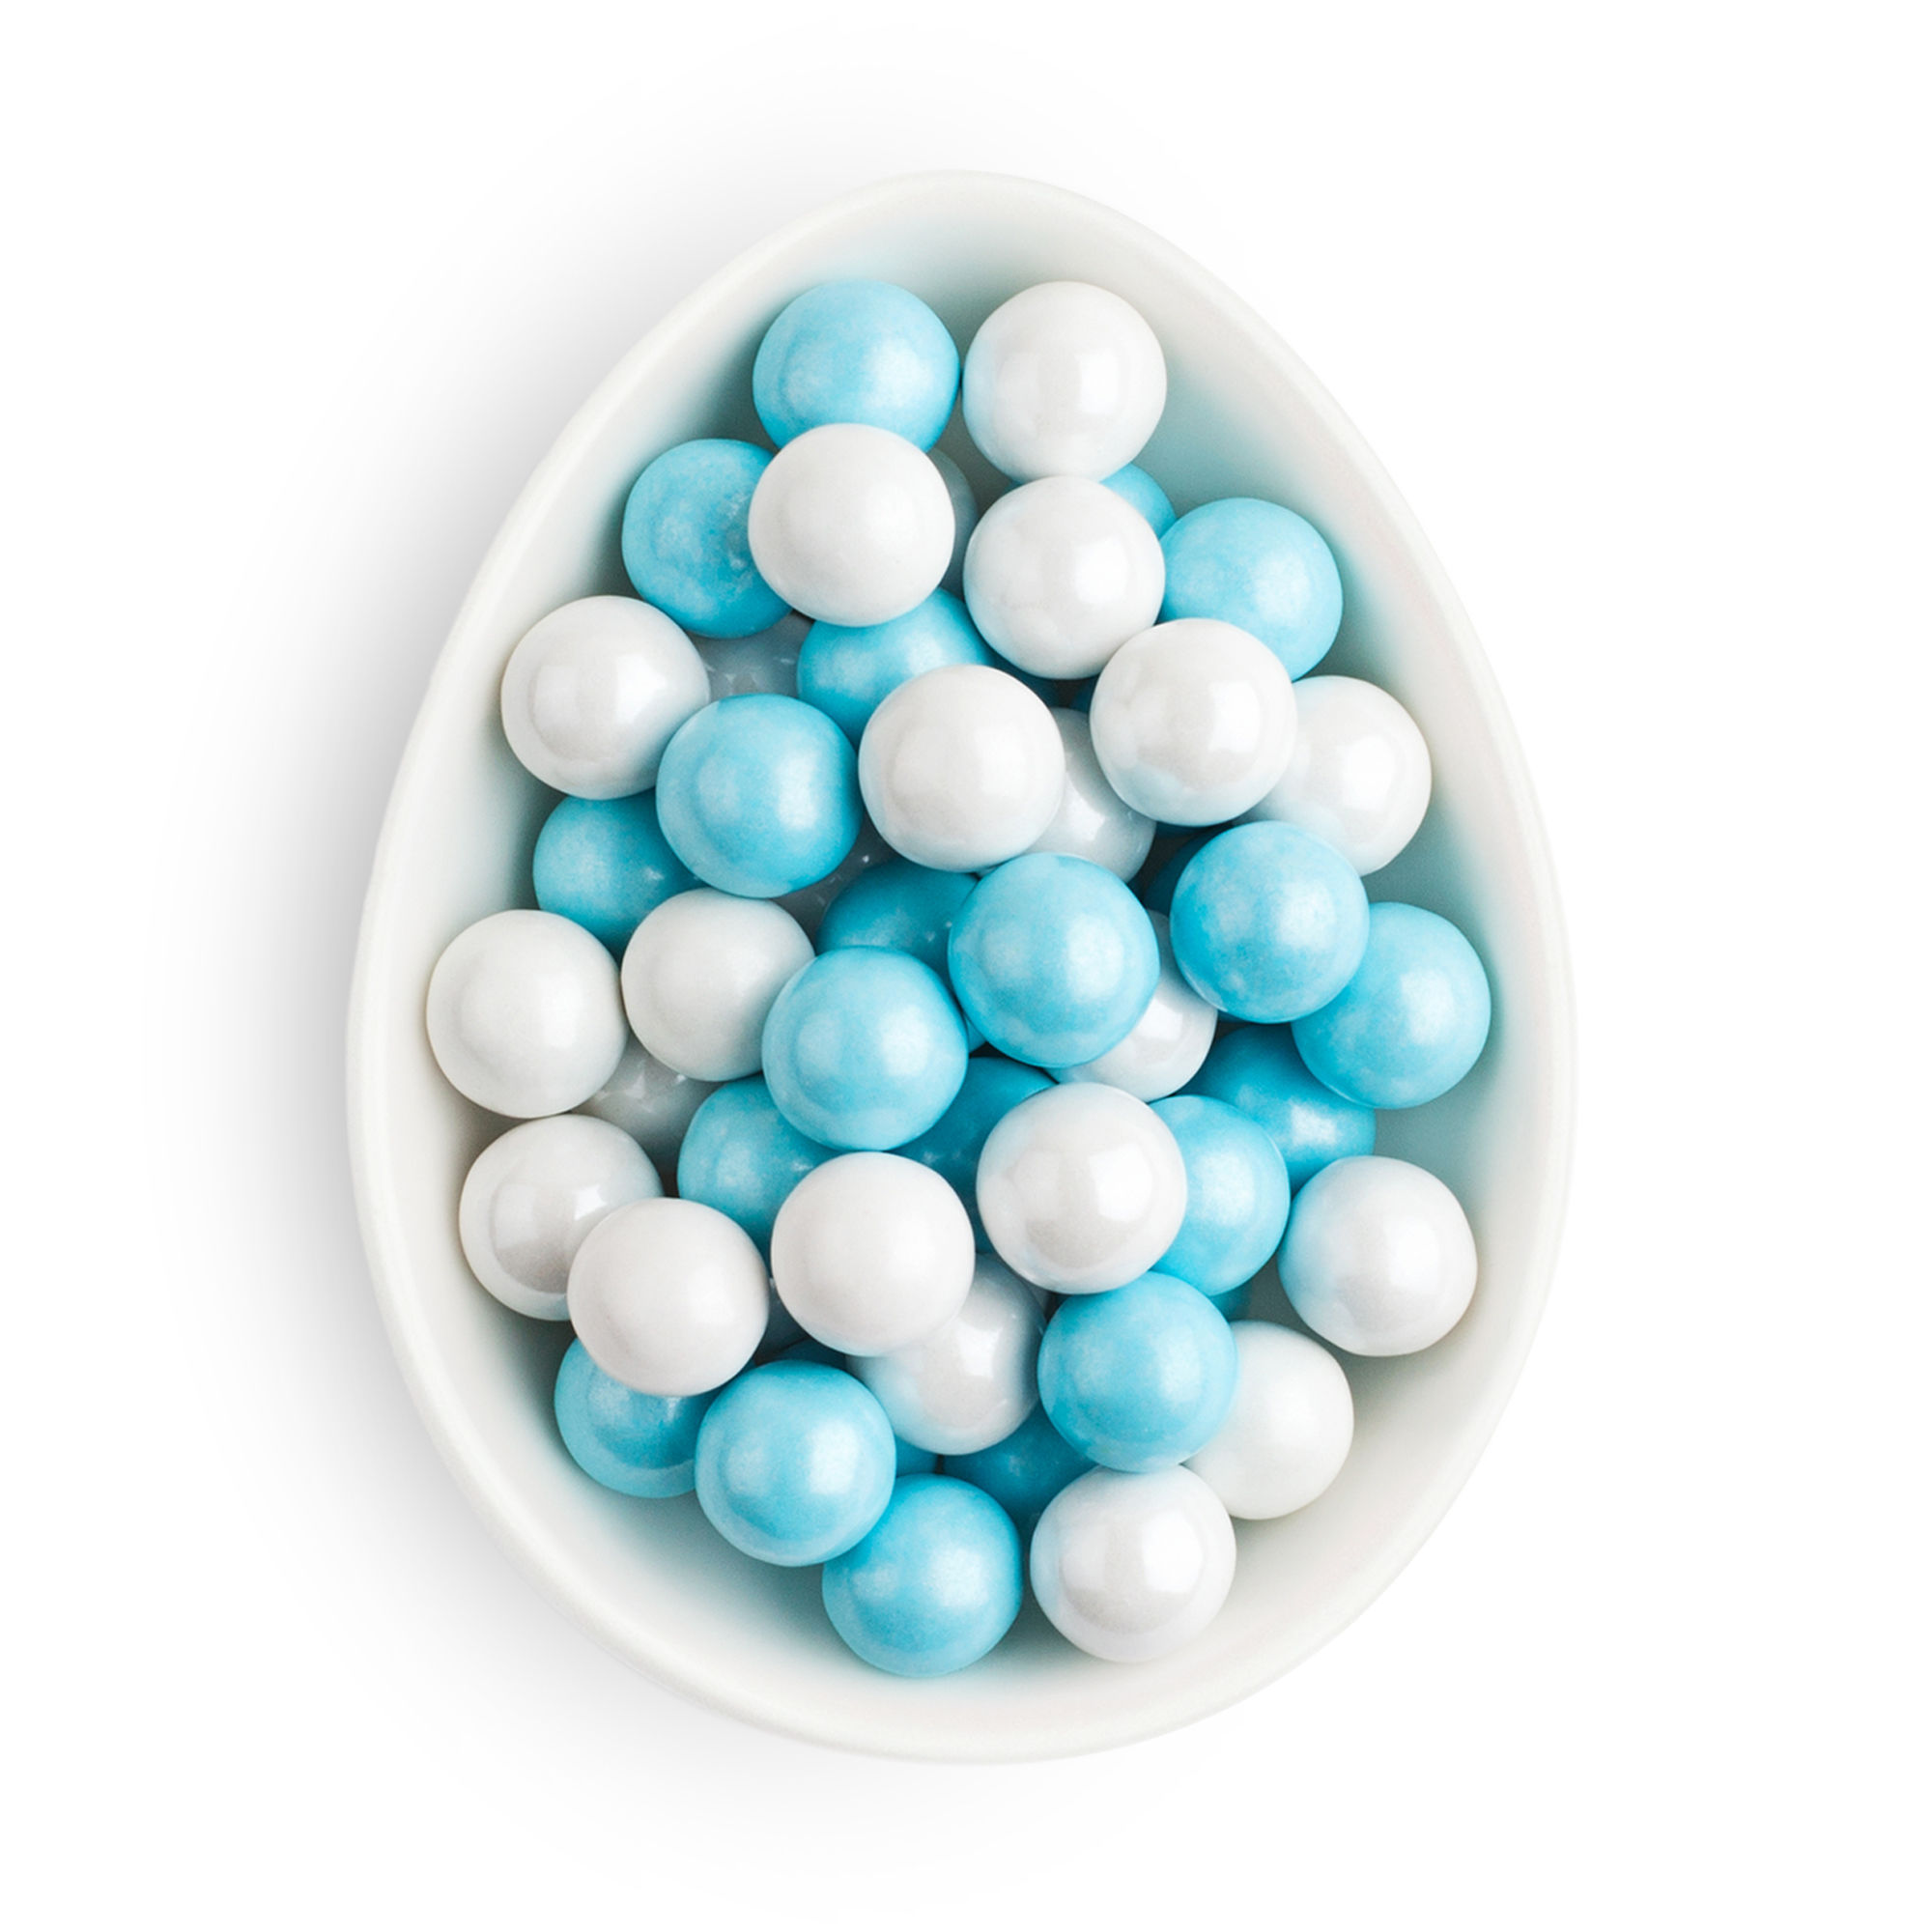 Sugarfina Pearls - Pearl Shaped Chocolate | Sugarfina | A Luxury ...